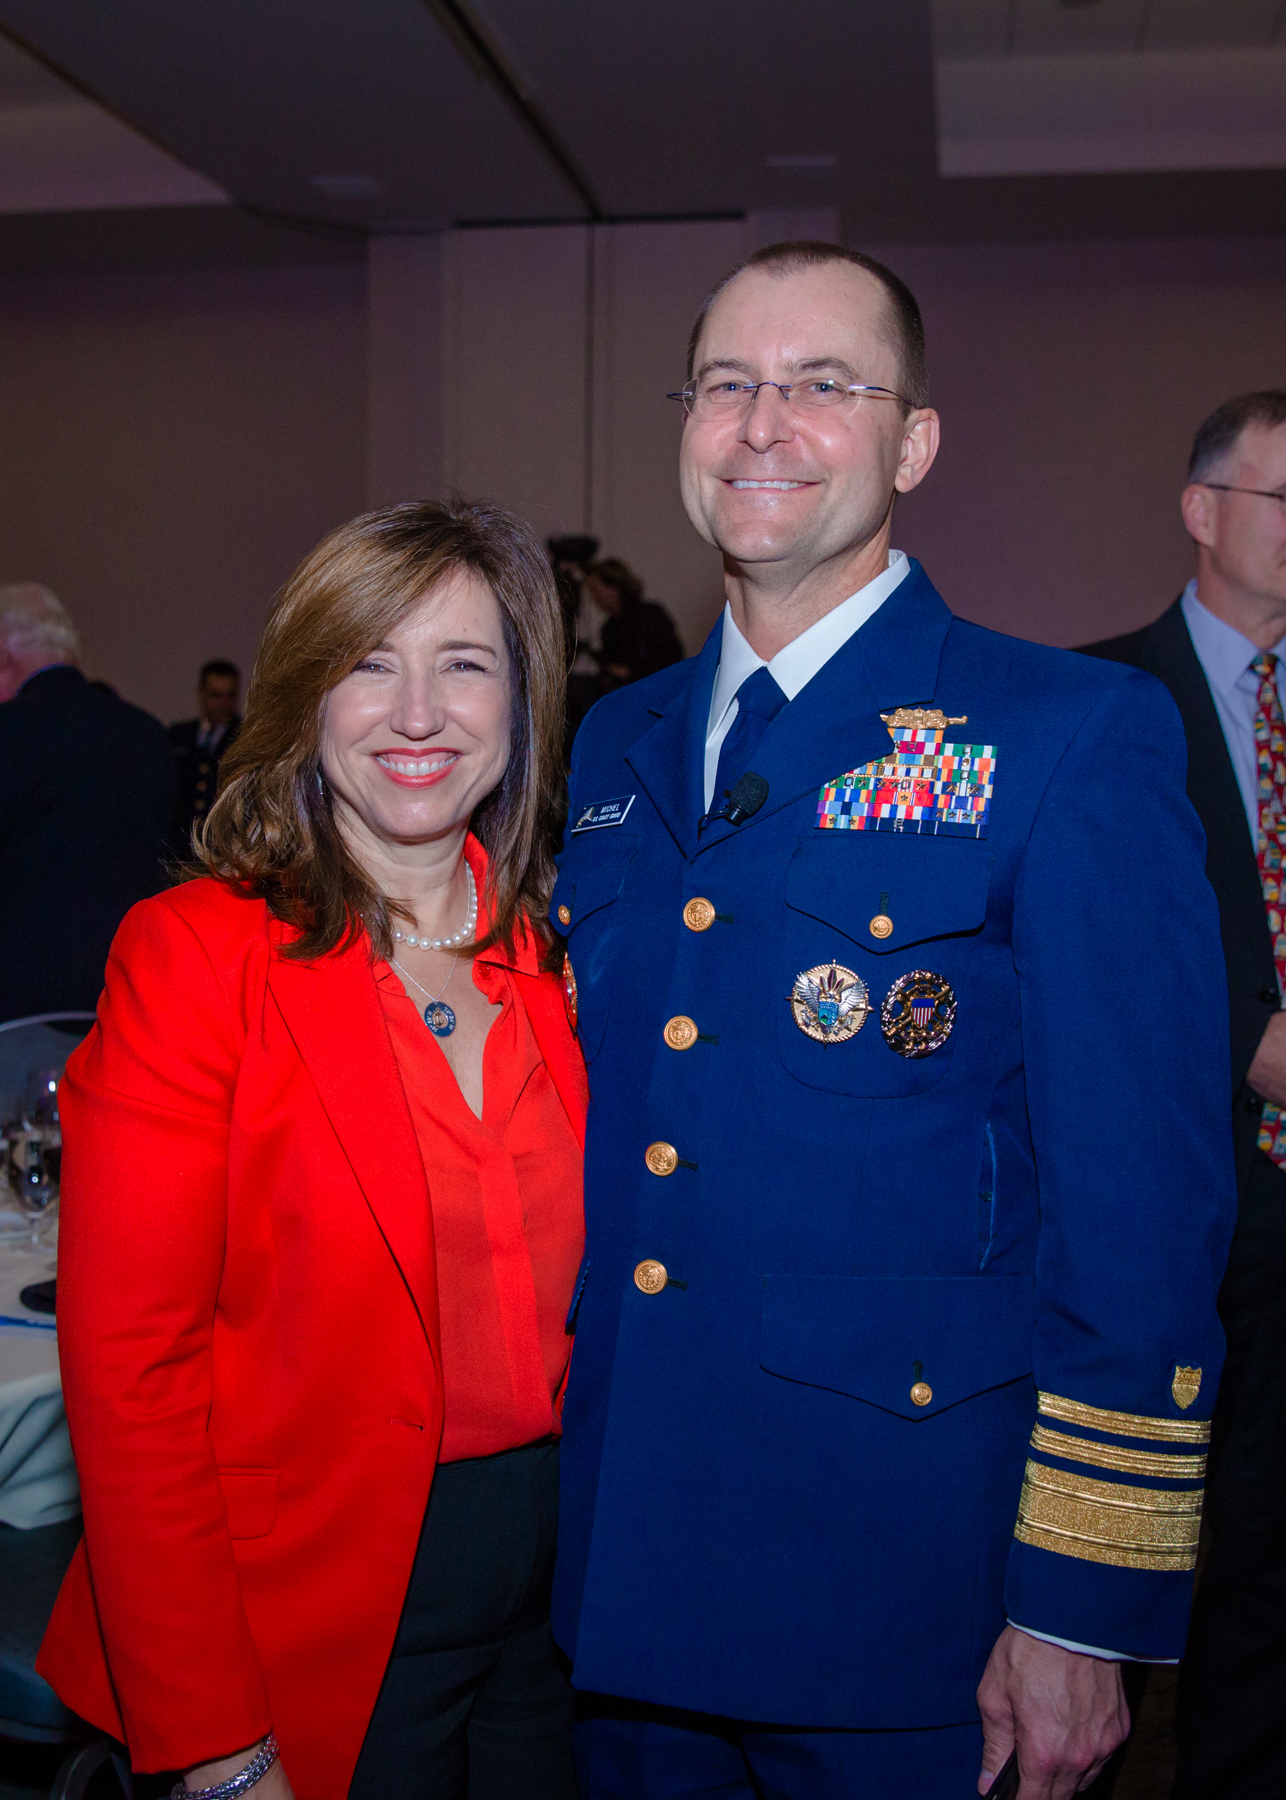 Carnival President Christine Duffy Recognized at United States Coast Guard Reception